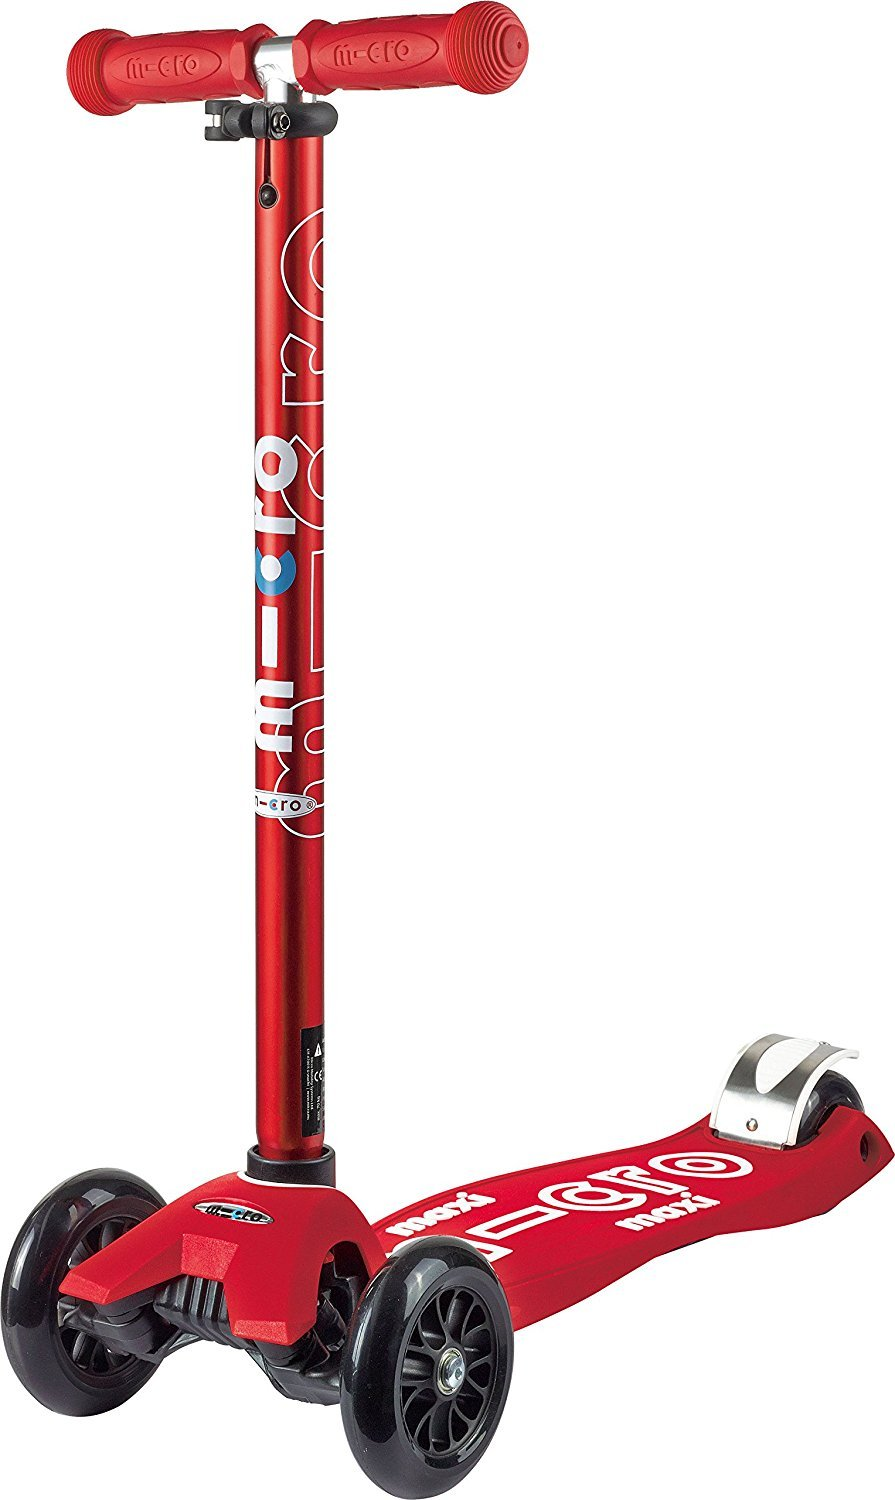 Micro Maxi Deluxe Kick Scooters (Red) by Micro Kickboard (Image #2)